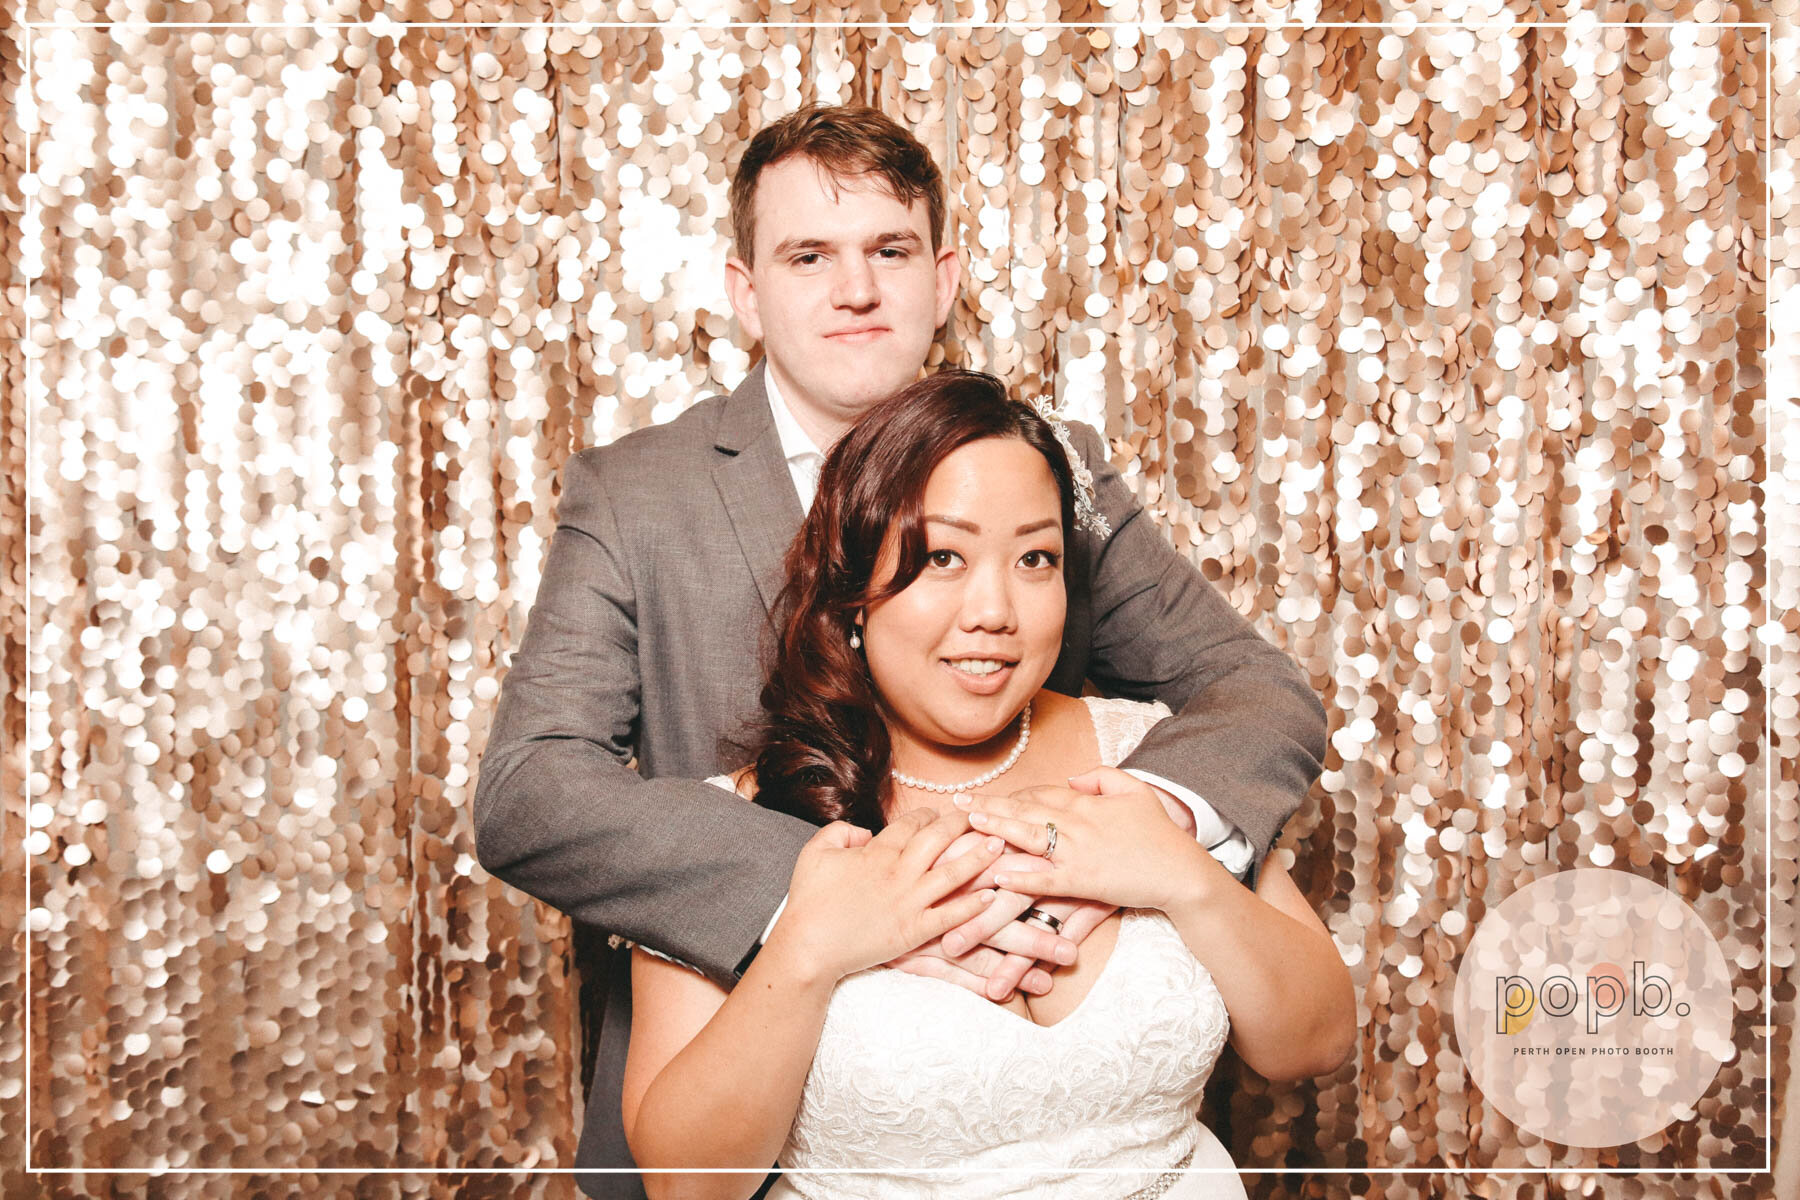 Lilyn + Rhys' wedding - pASSWORD: PROVIDED ON THE night- ALL LOWERCASE -